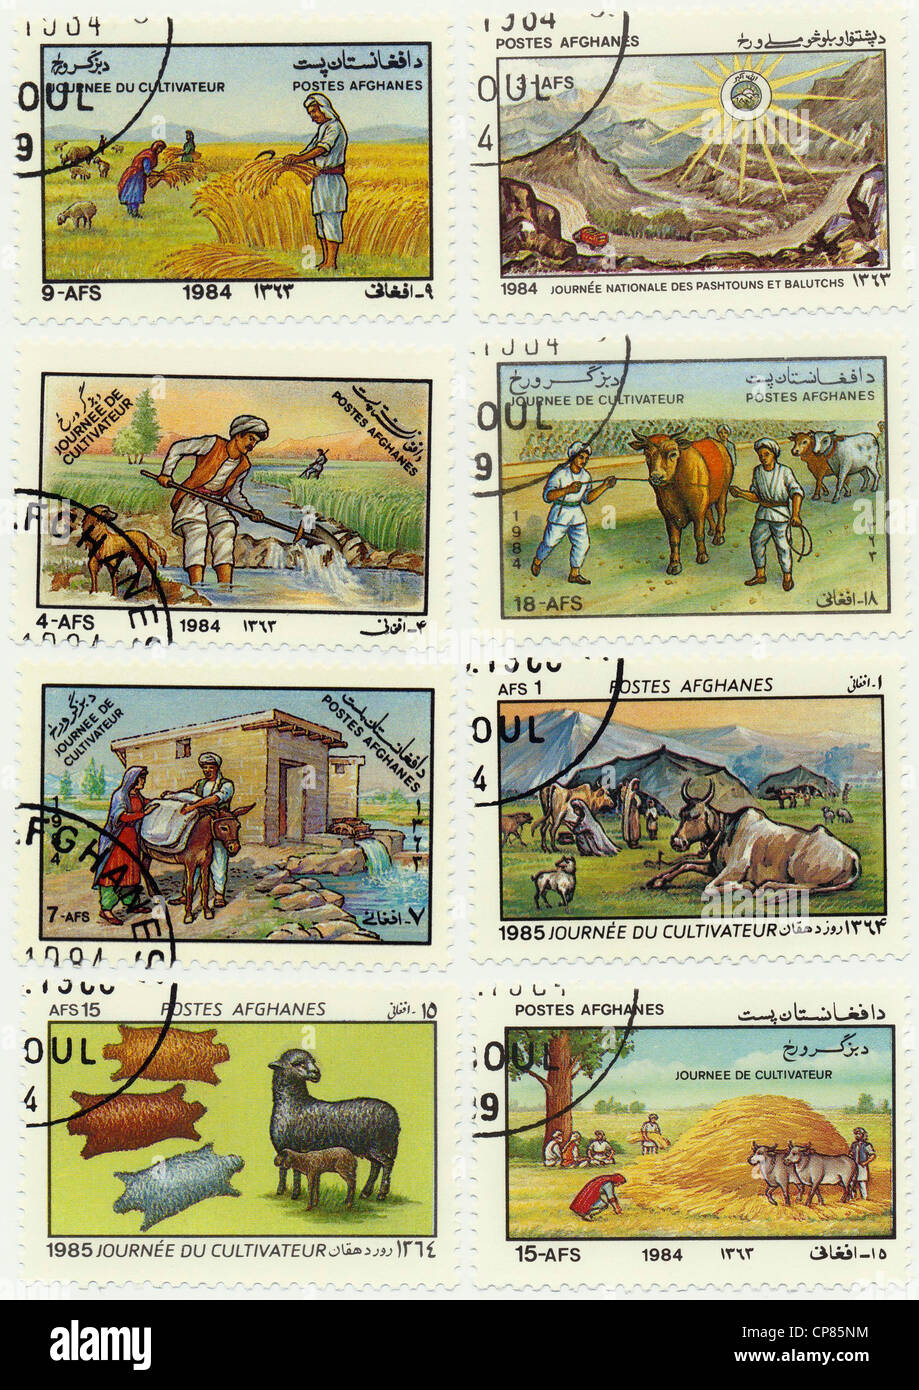 Historic postage stamps from Afghanistan, celebration of the day of agriculture, Historische Briefmarken aus Afghanistan Stock Photo